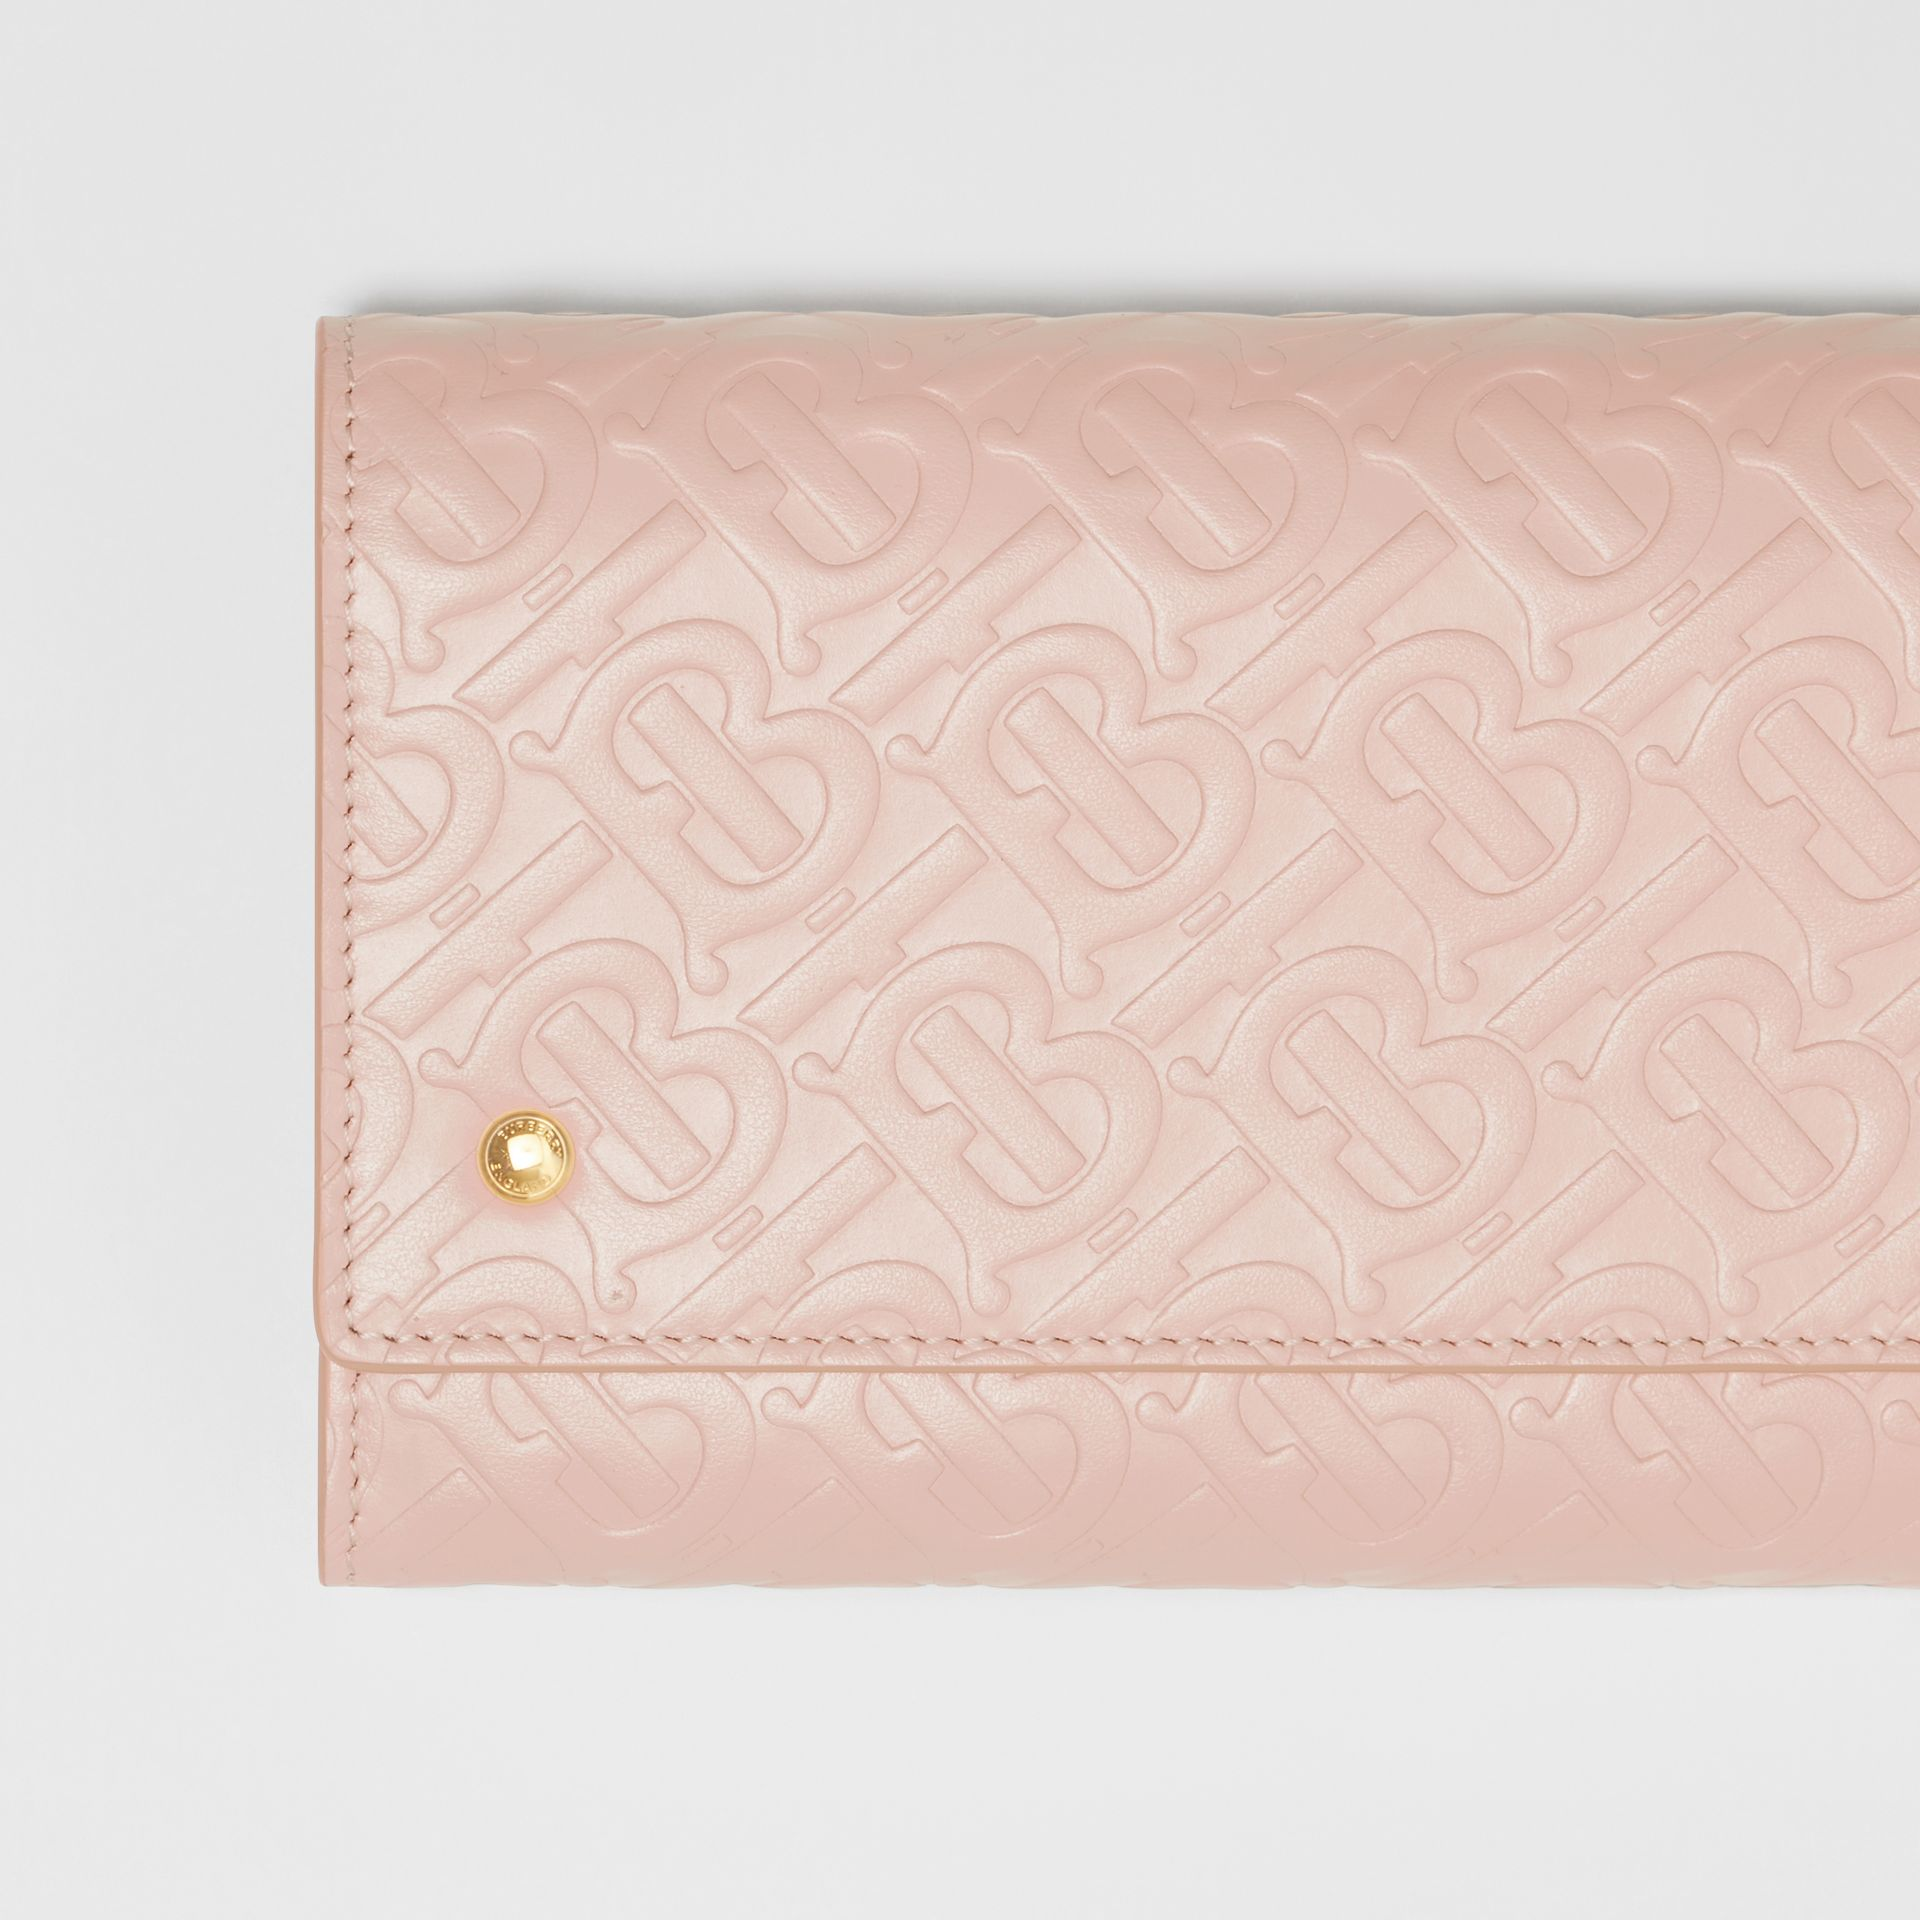 Portefeuille en cuir Monogram et sangle amovible (Beige Rose) - Femme | Burberry Canada - photo de la galerie 1